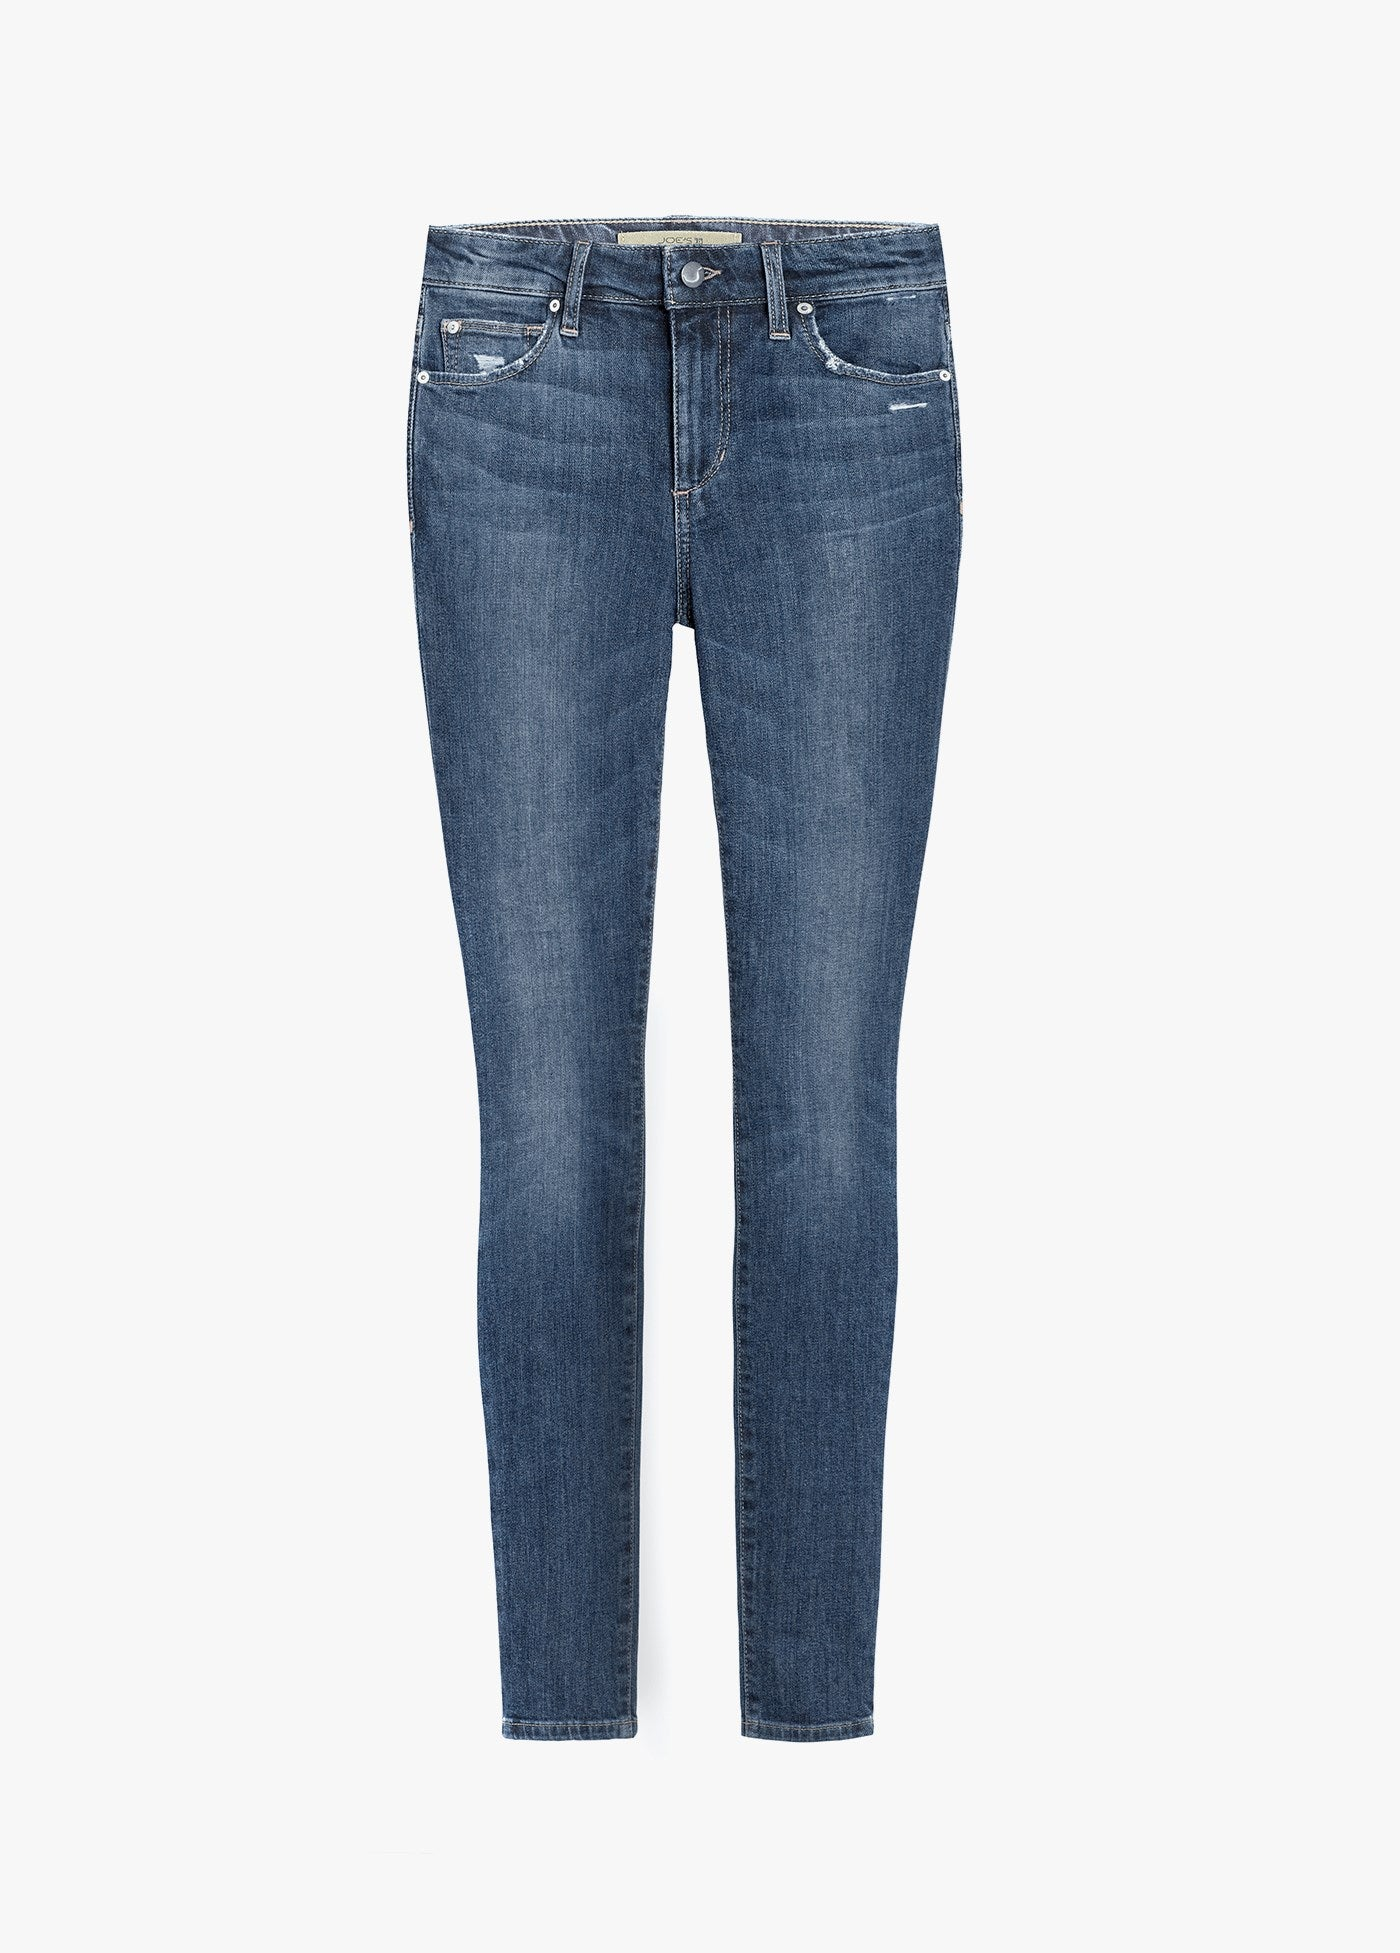 Joe's The Icon Midrise Skinny Jean - Kamala 45GDSKML5252-KM